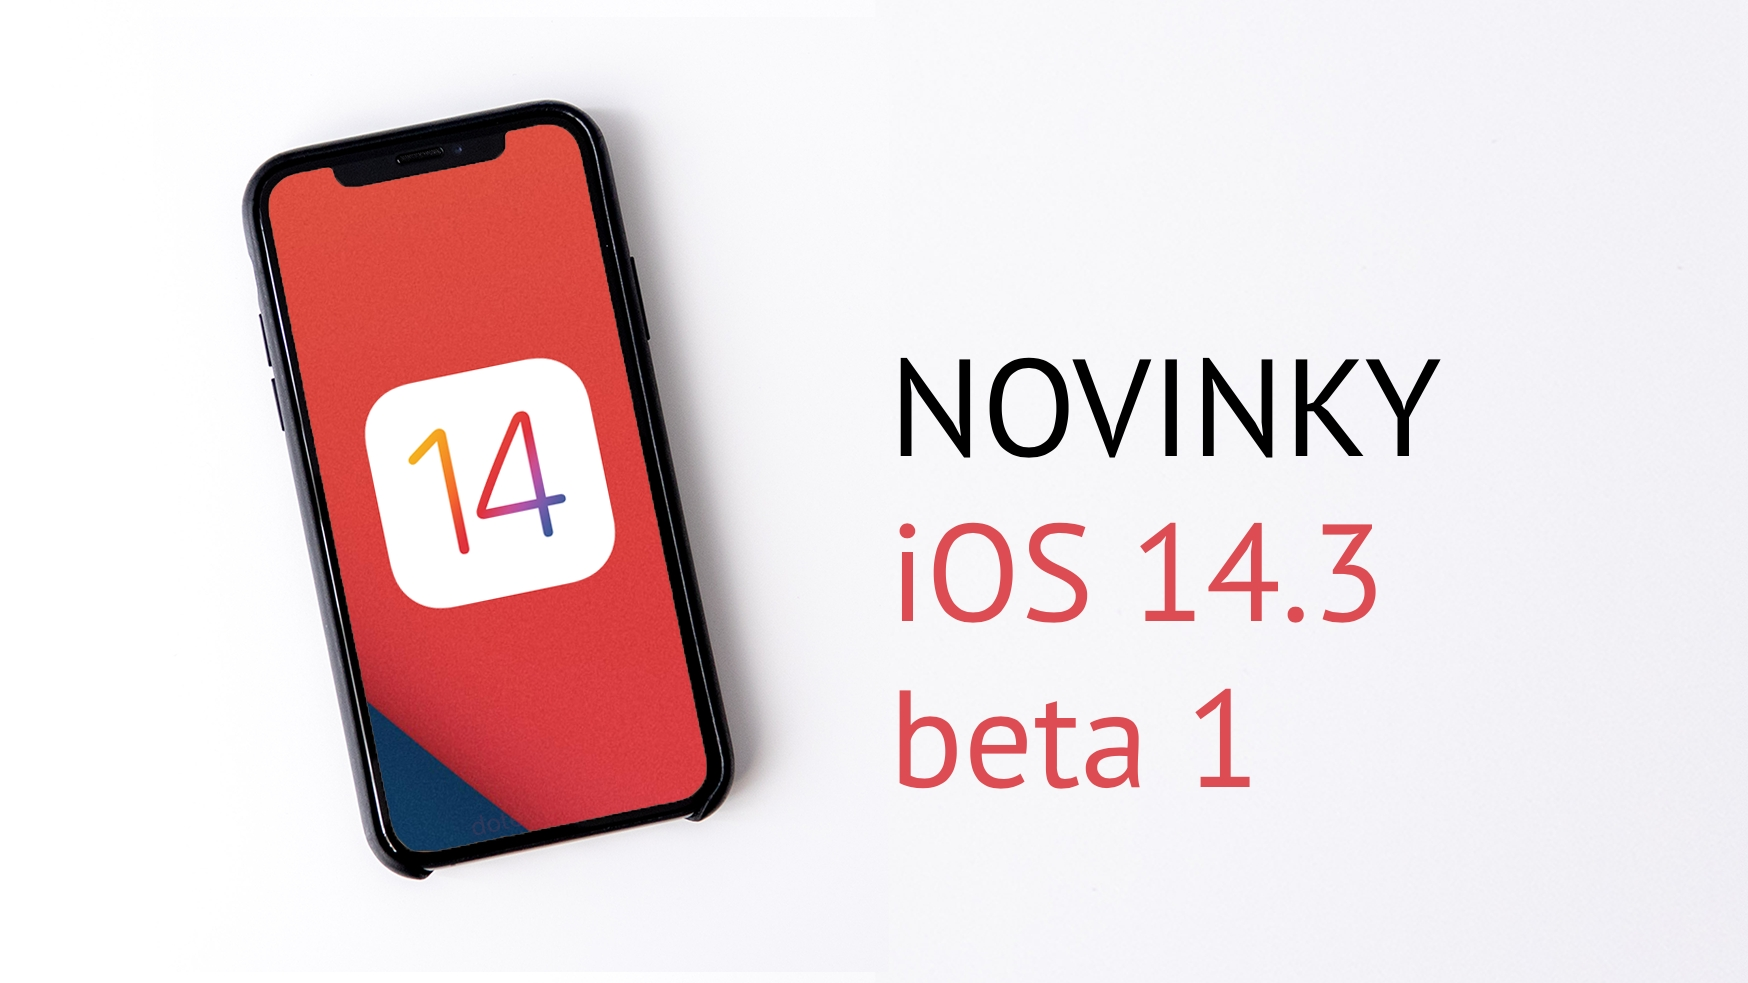 iOS 14.3 beta 1 potvrdila příchod AirPods Studio a AirTags